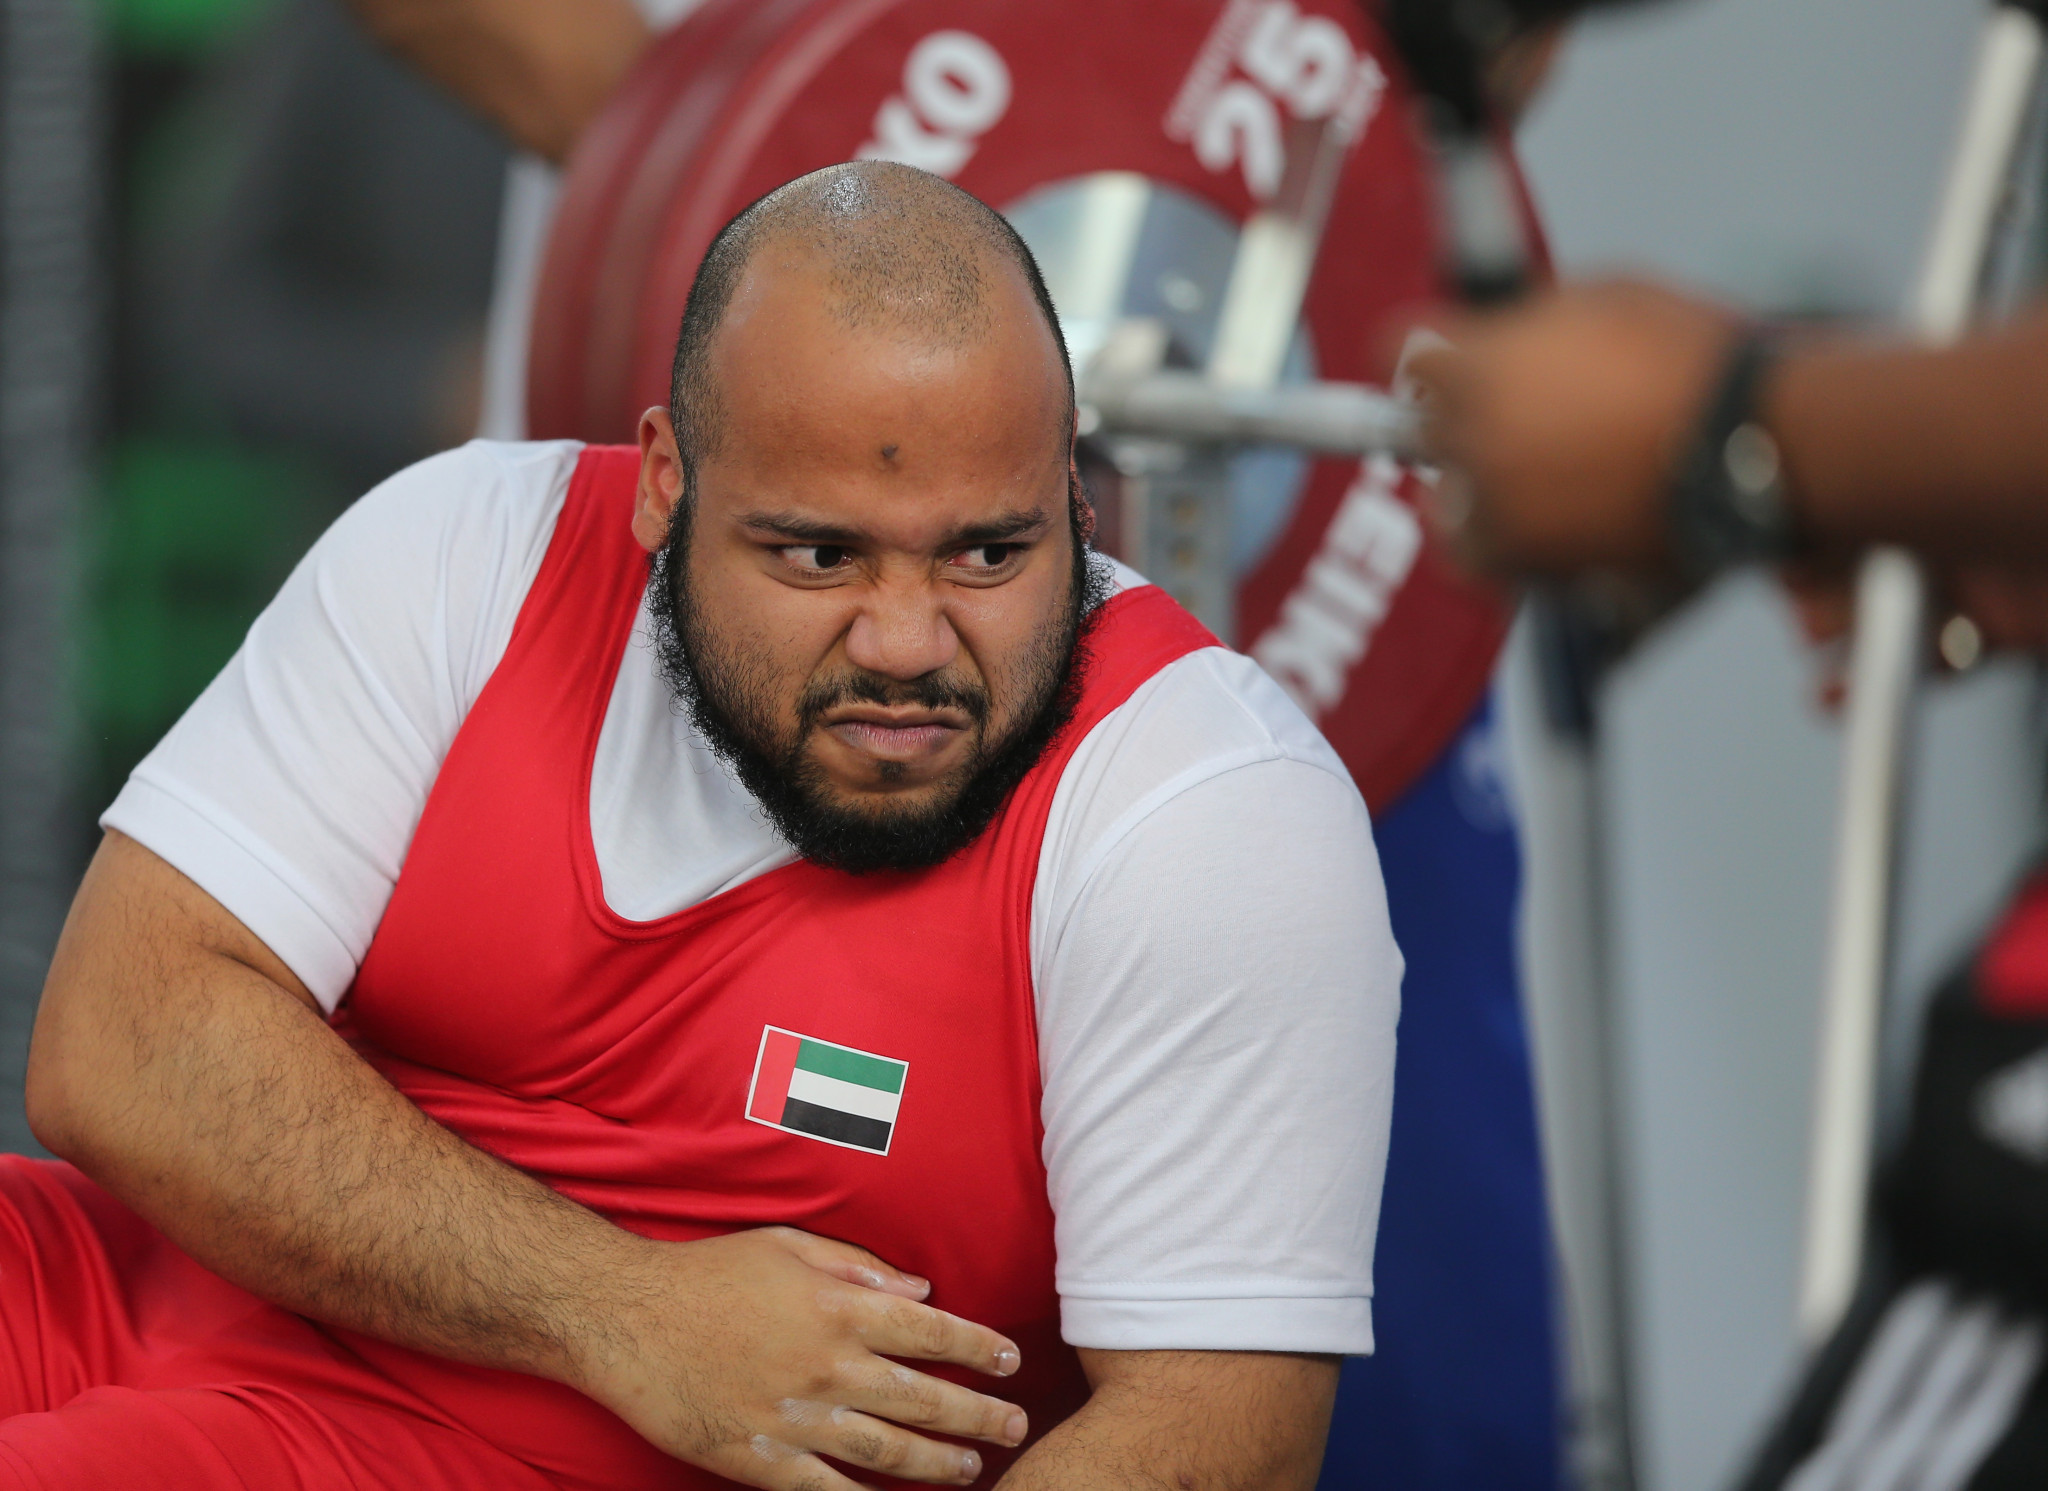 Hosts clinch double gold on penultimate day of World Para Powerlifting World Cup in Dubai